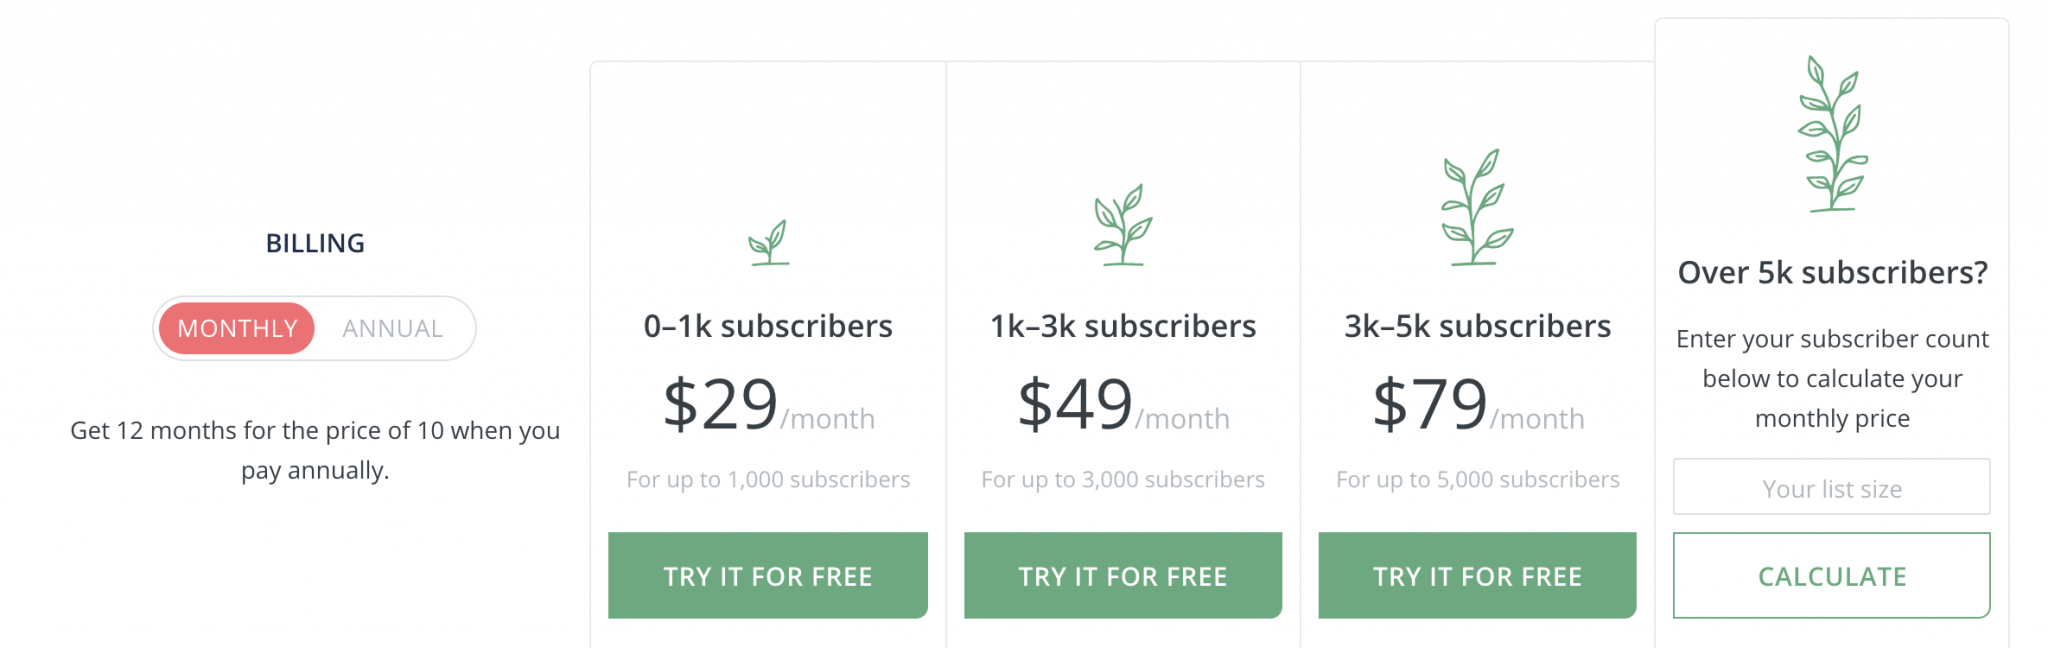 Free Offer Convertkit May 2020